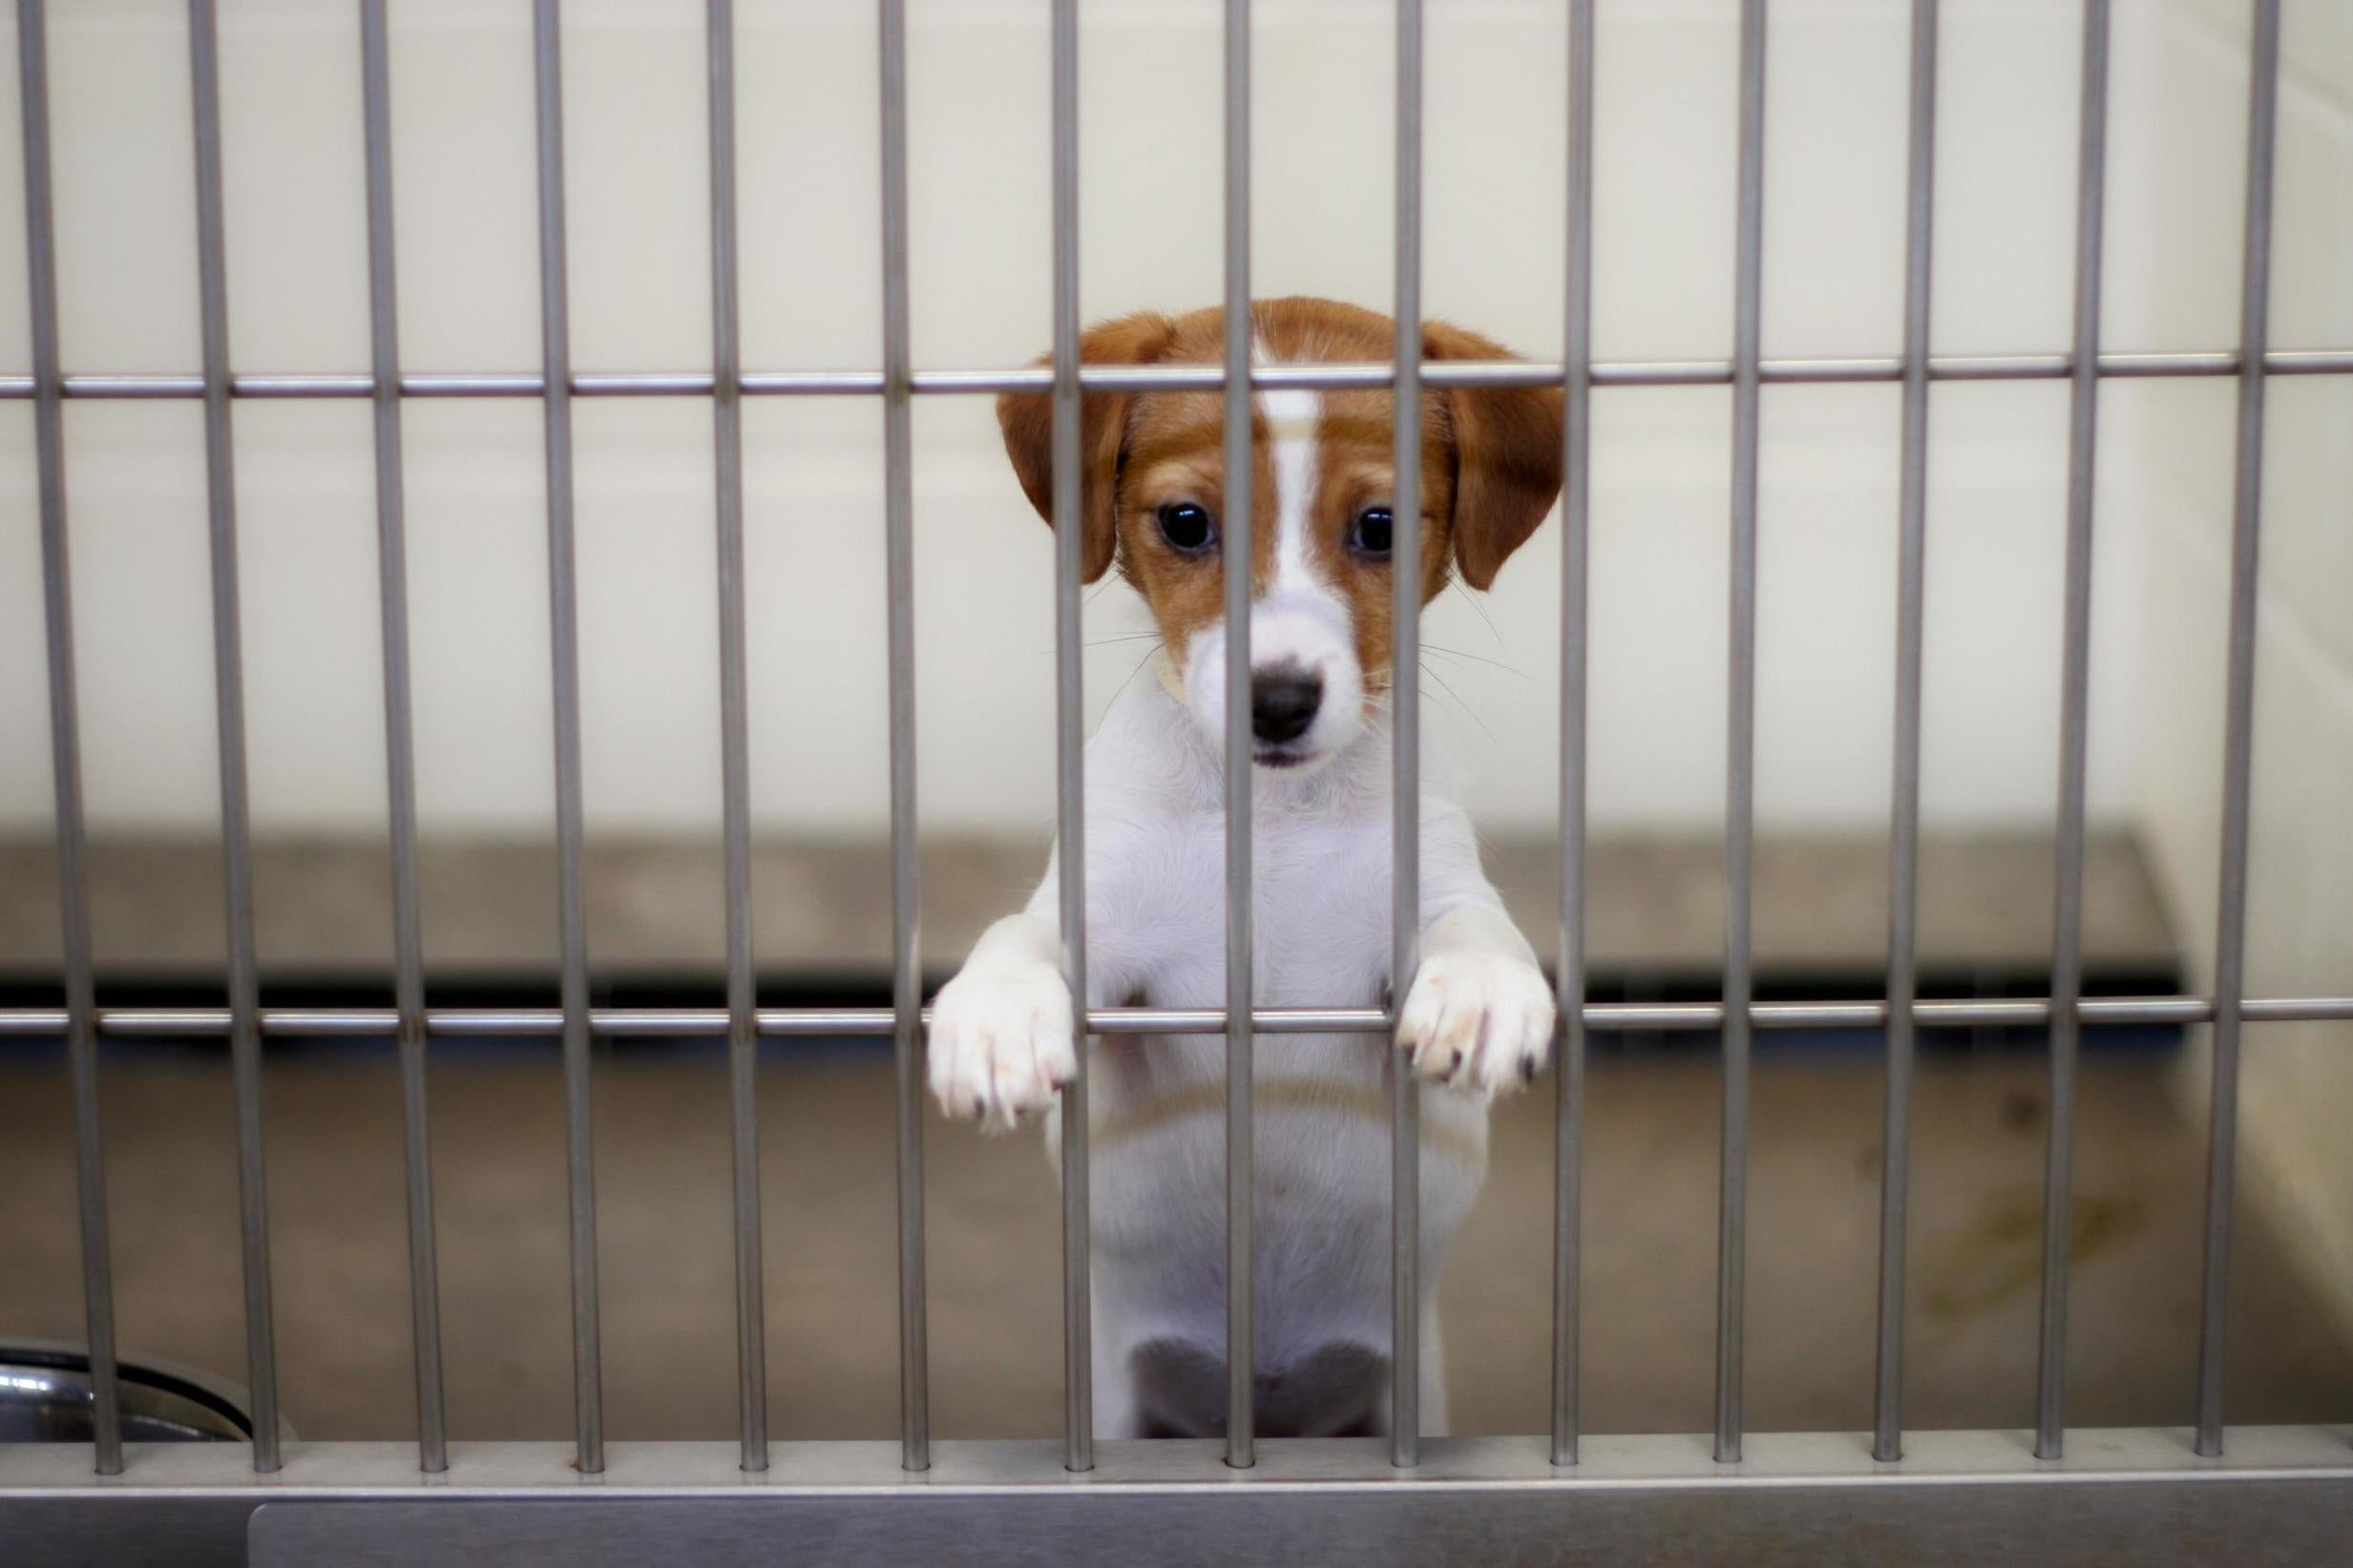 Lab animals can now be adopted instead of euthanised, FDA says